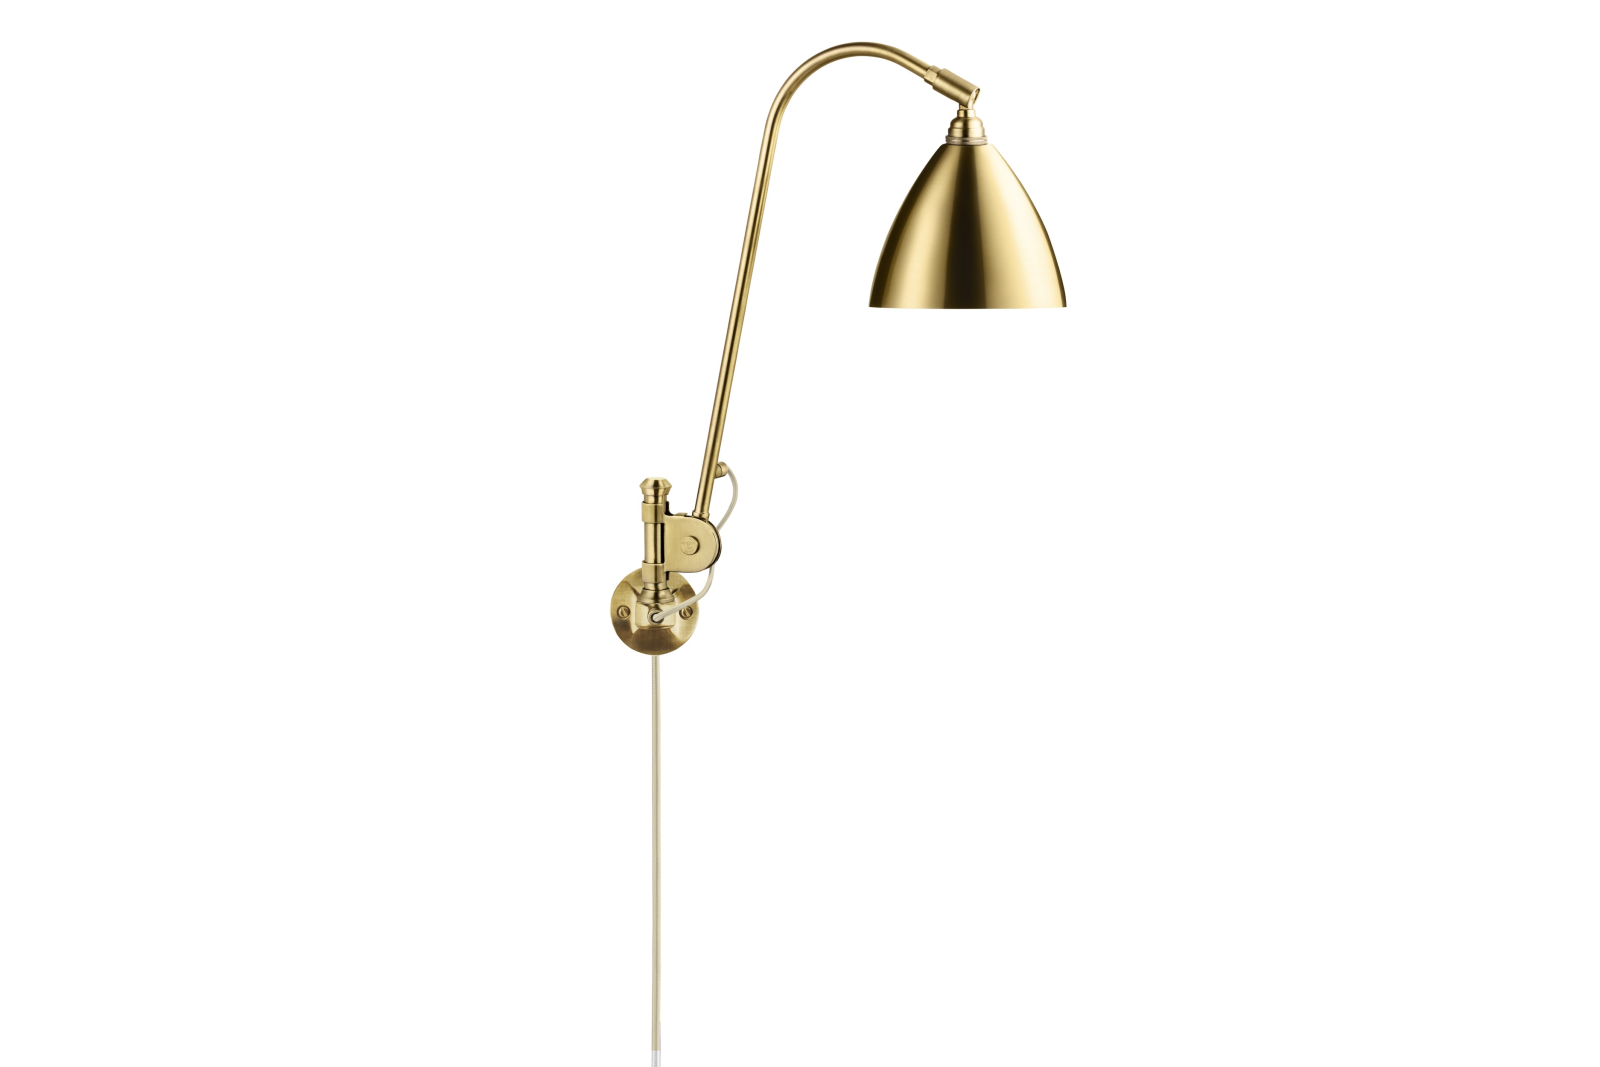 Bestlite BL6 Wall Light Brass / Brass